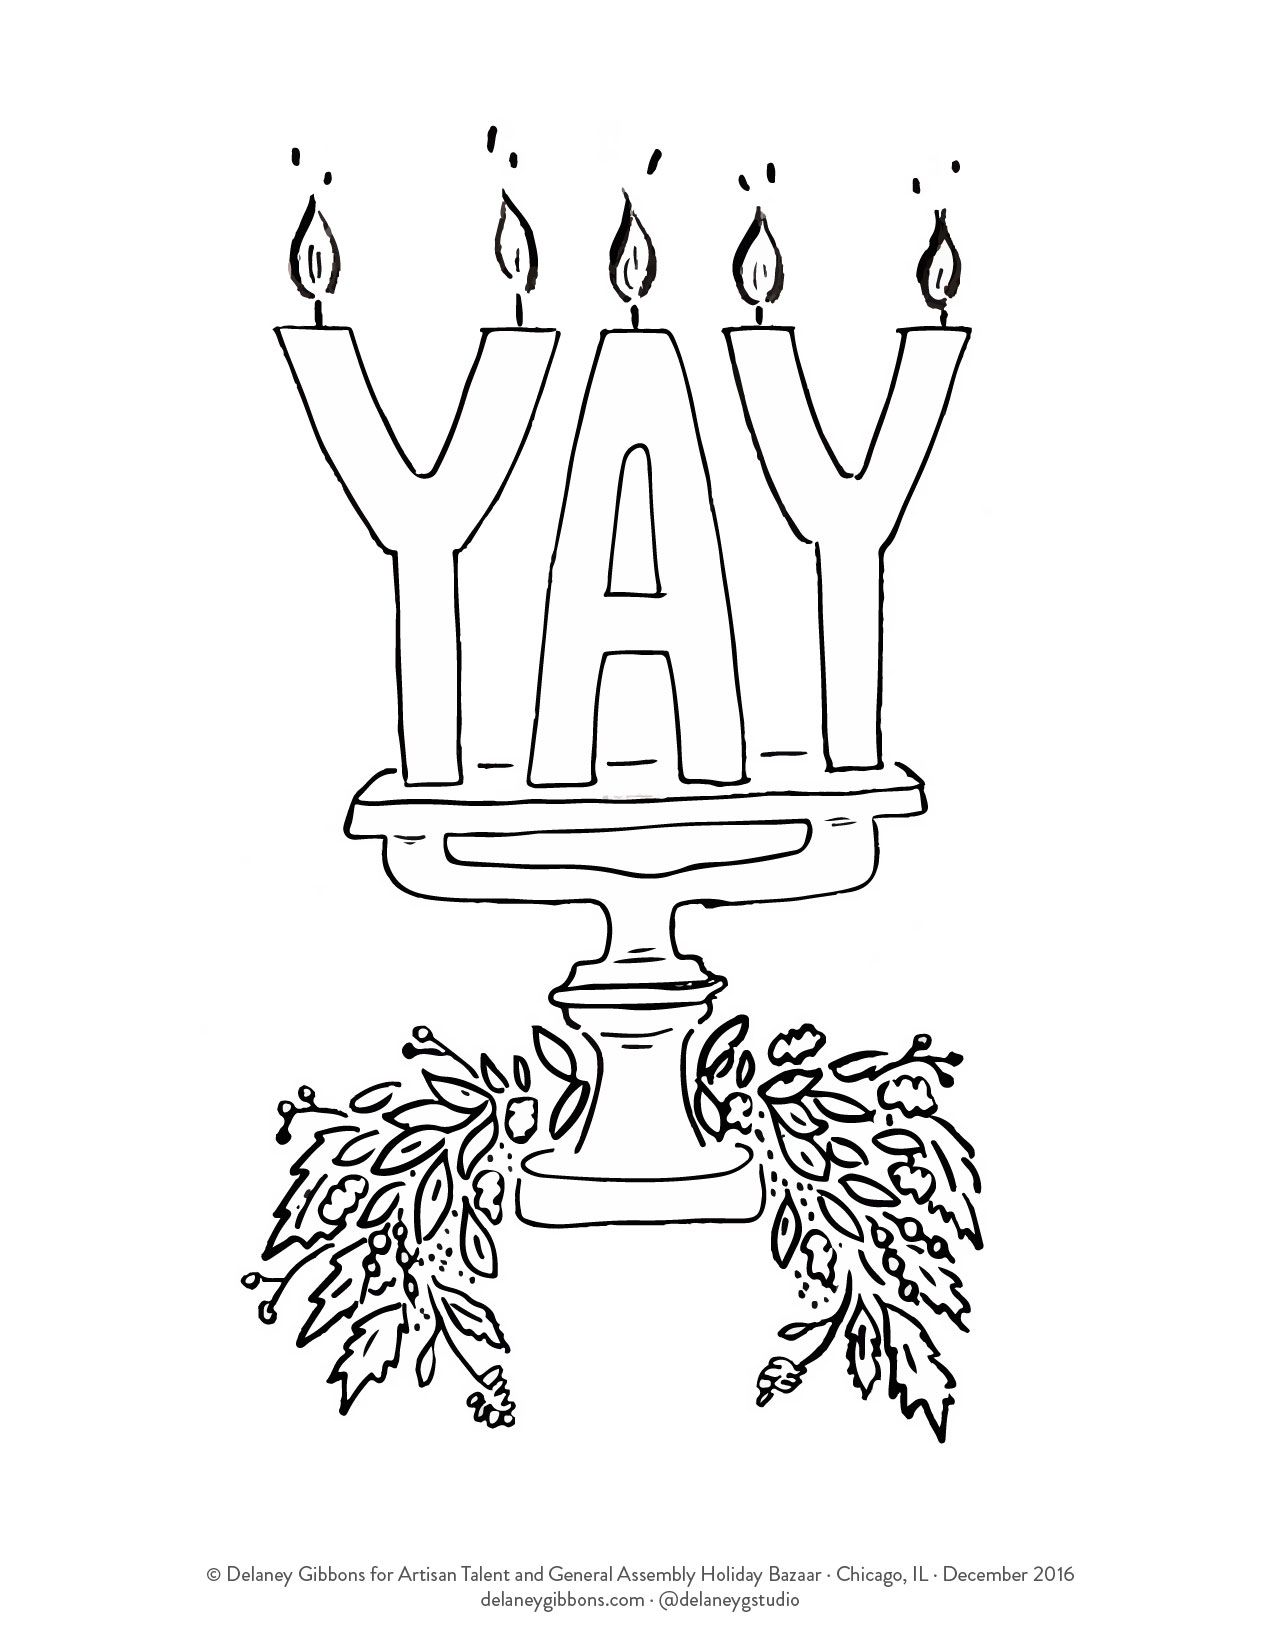 holidaydrawings-yaycandle.jpg